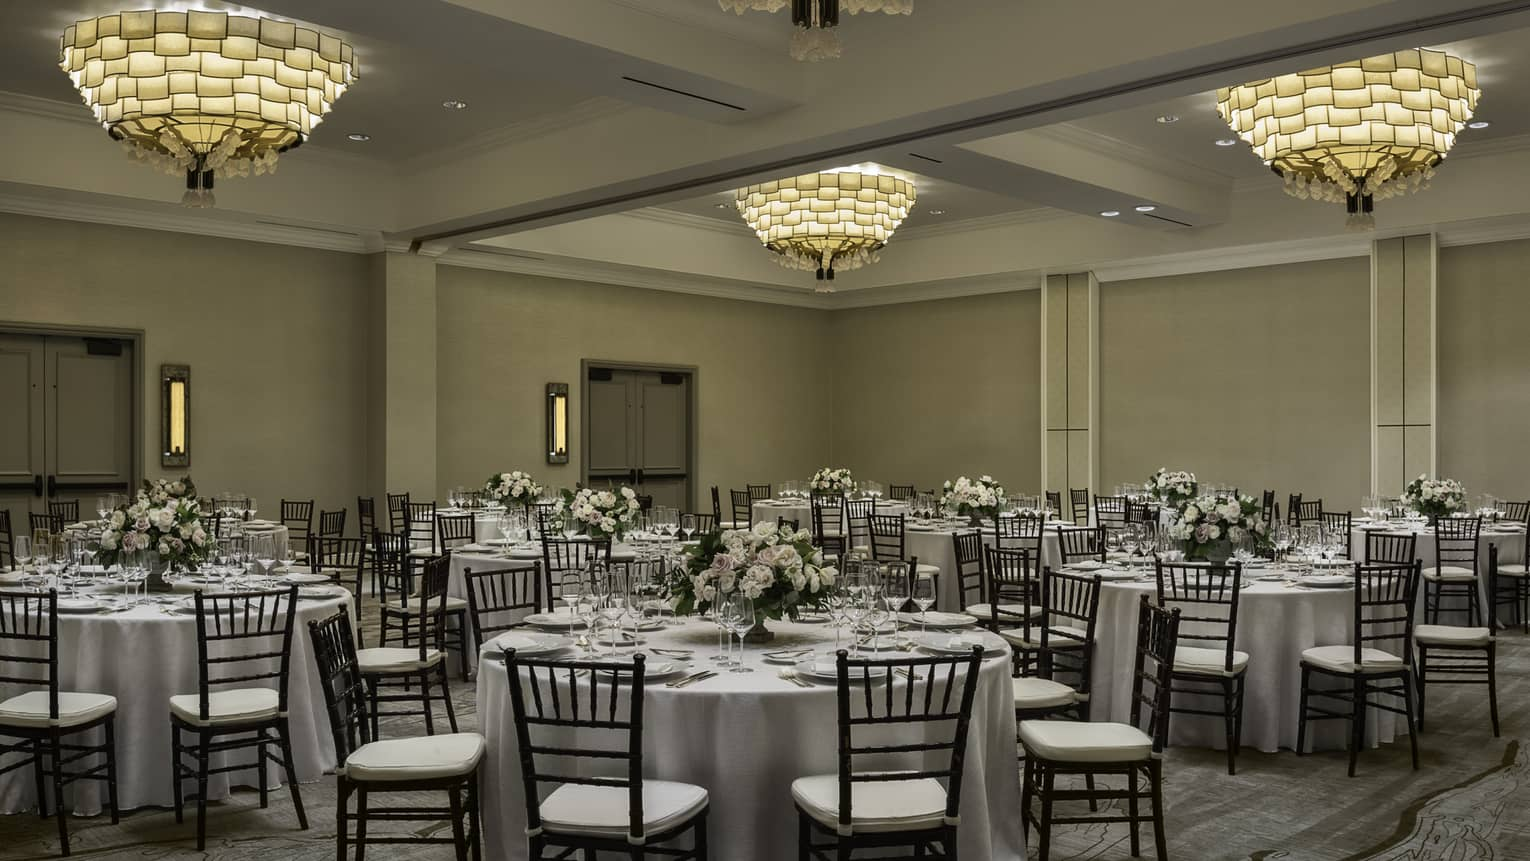 Large round banquet dining tables and chairs under three small chandeliers